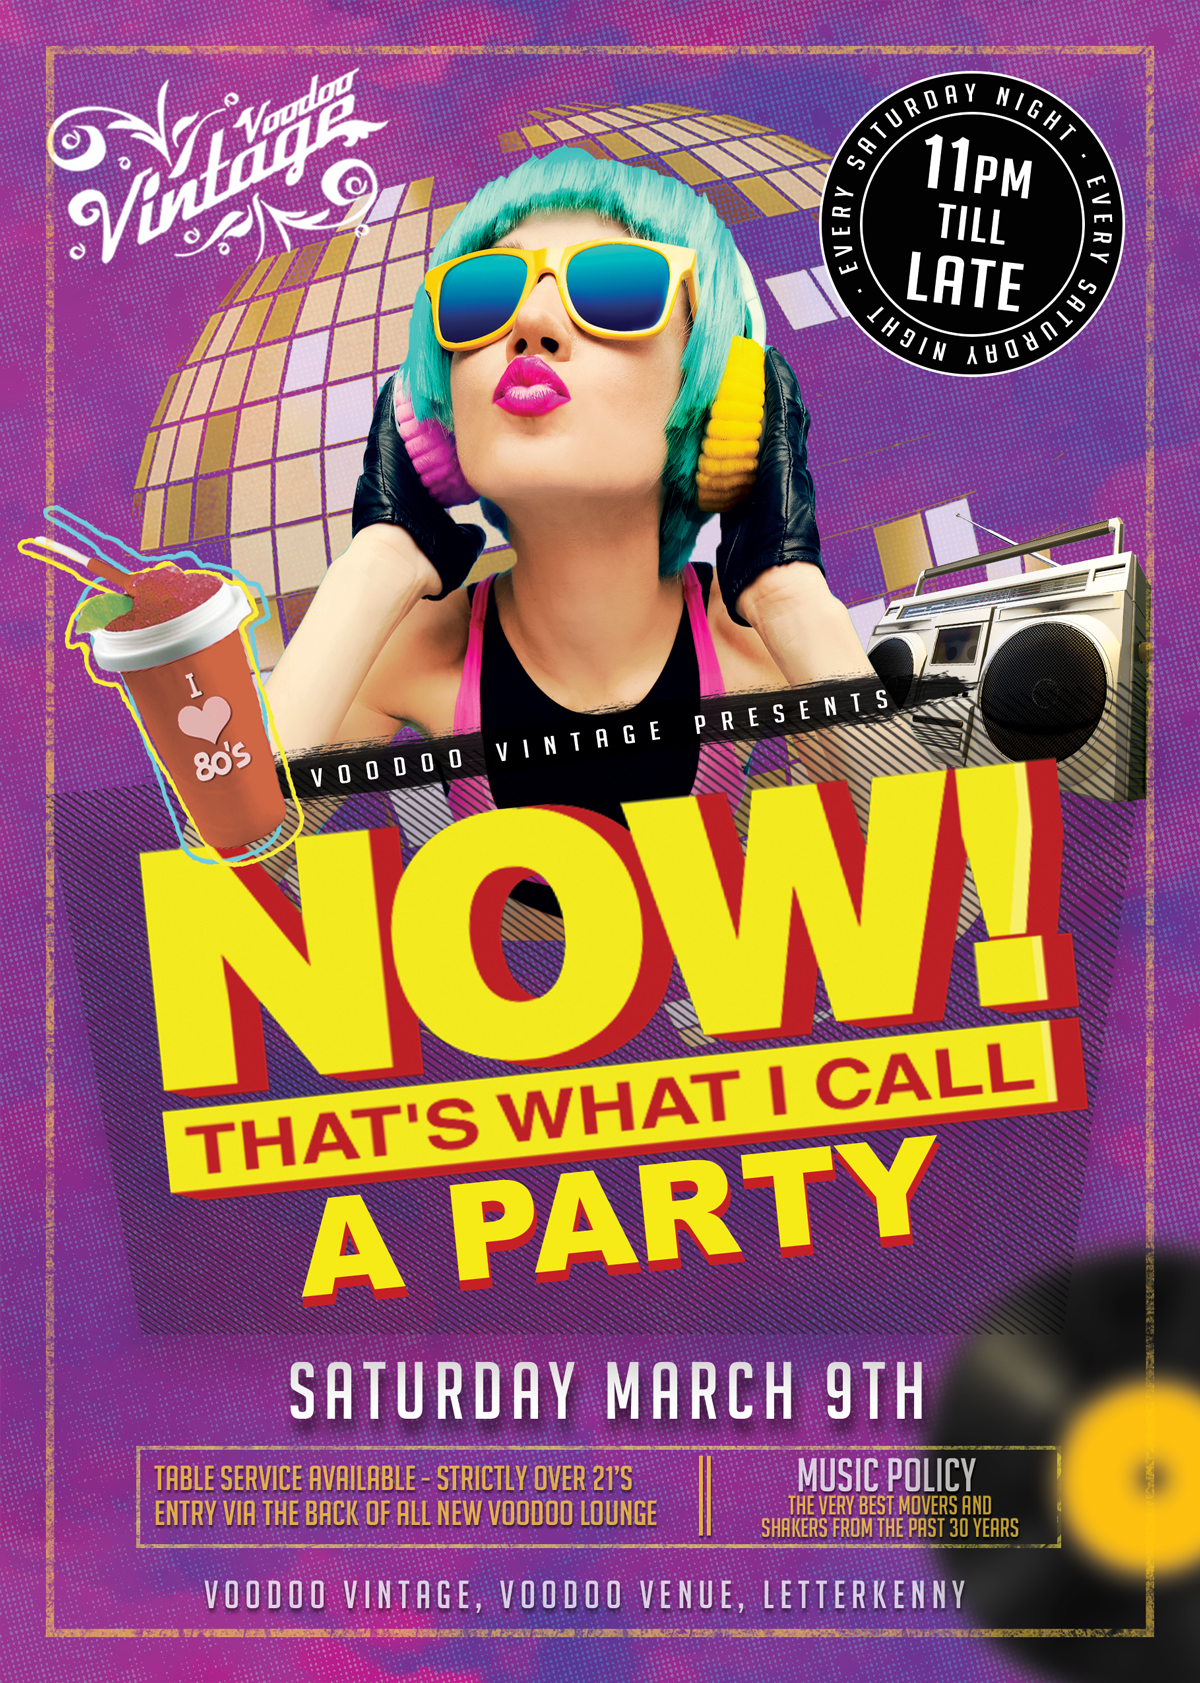 voodoo-vintage---now-thats-what-i-call-a-party-sat-march-9-2019.jpg